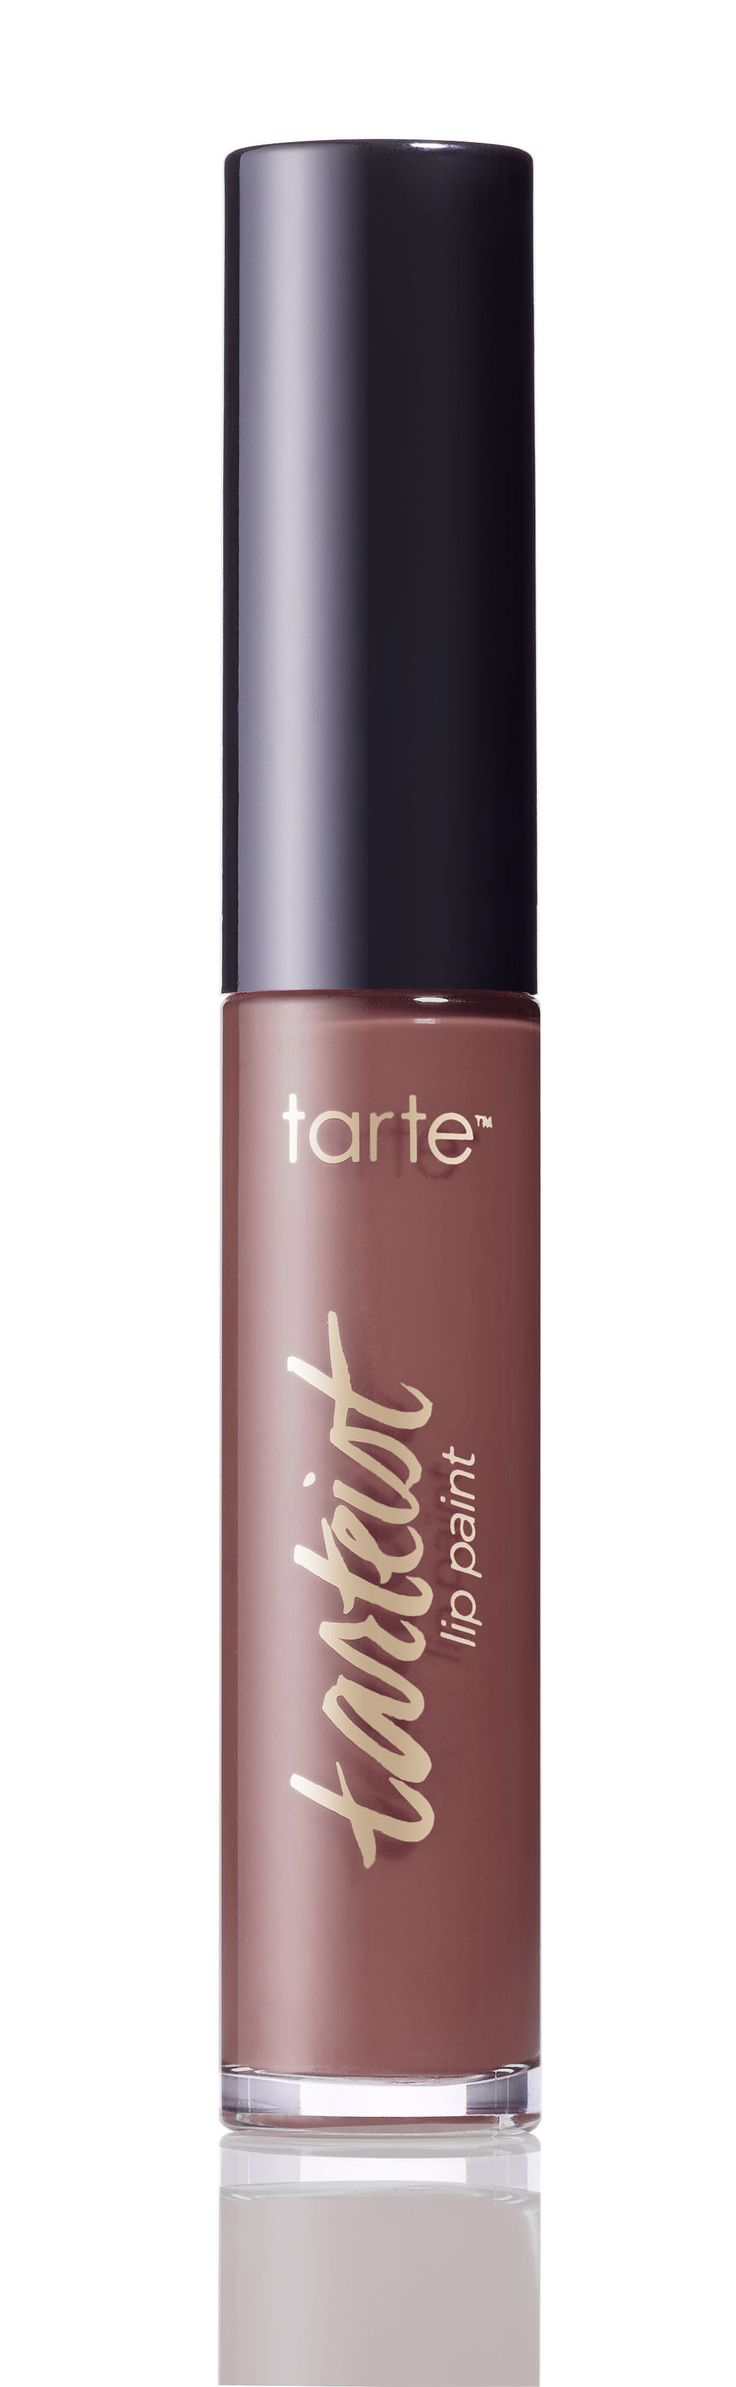 Tarte Cosmetics Tarteist Lip Paint in TBT